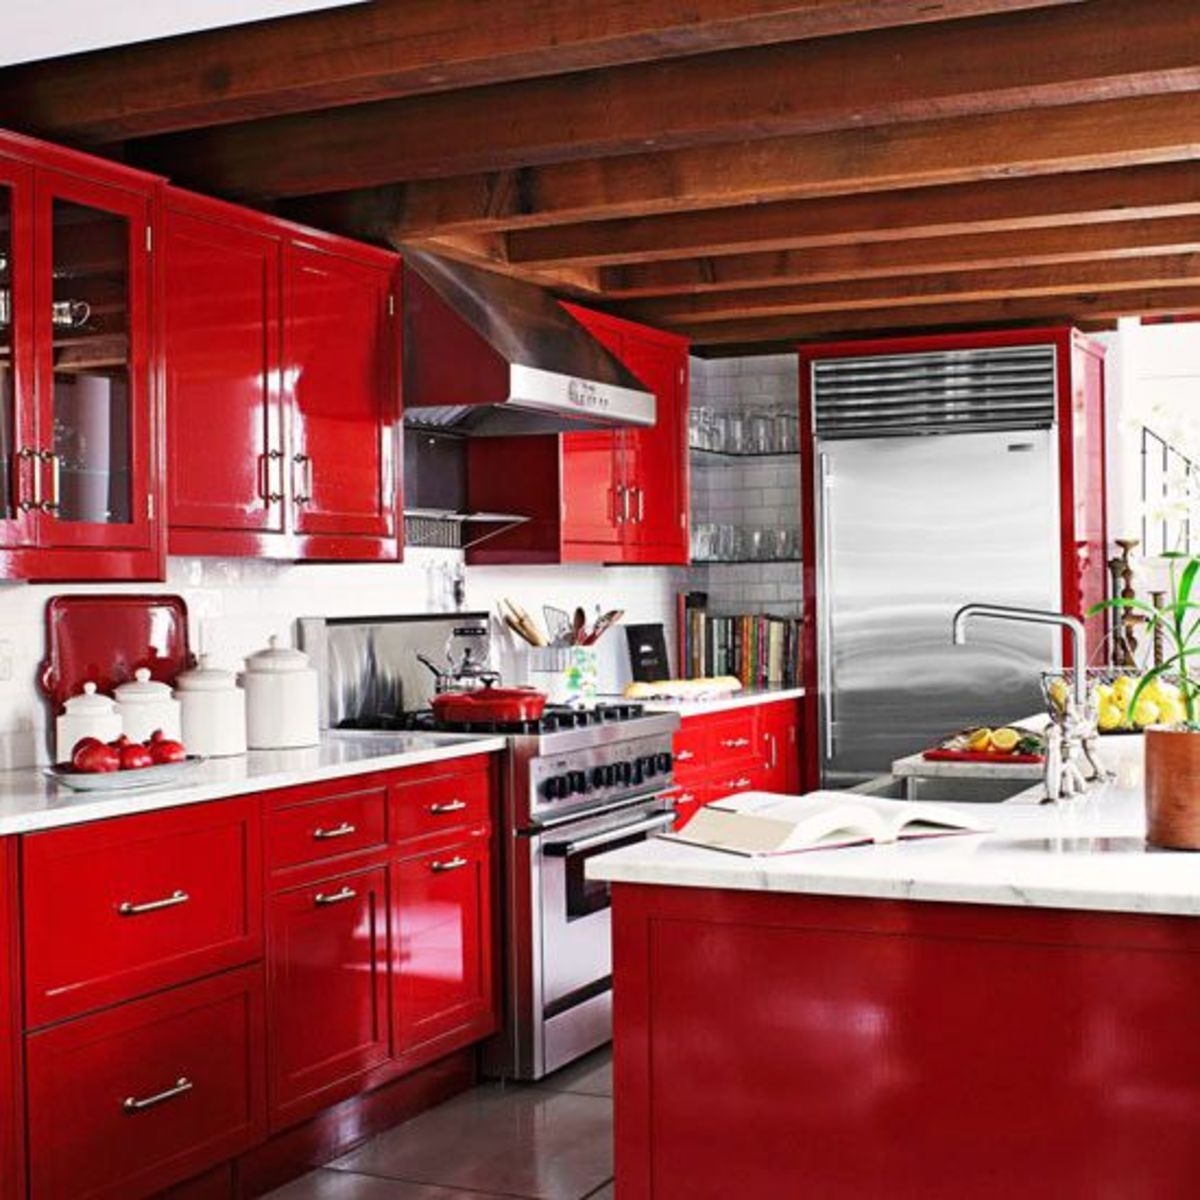 The Chinese Zodiac Horse kitchen should be SPACIOUS. The room needs to come alive, so use warm tones. Red, orange, yellow are all perfect. Throw in some patterns of triangles and stripes. You also want the latest tech.